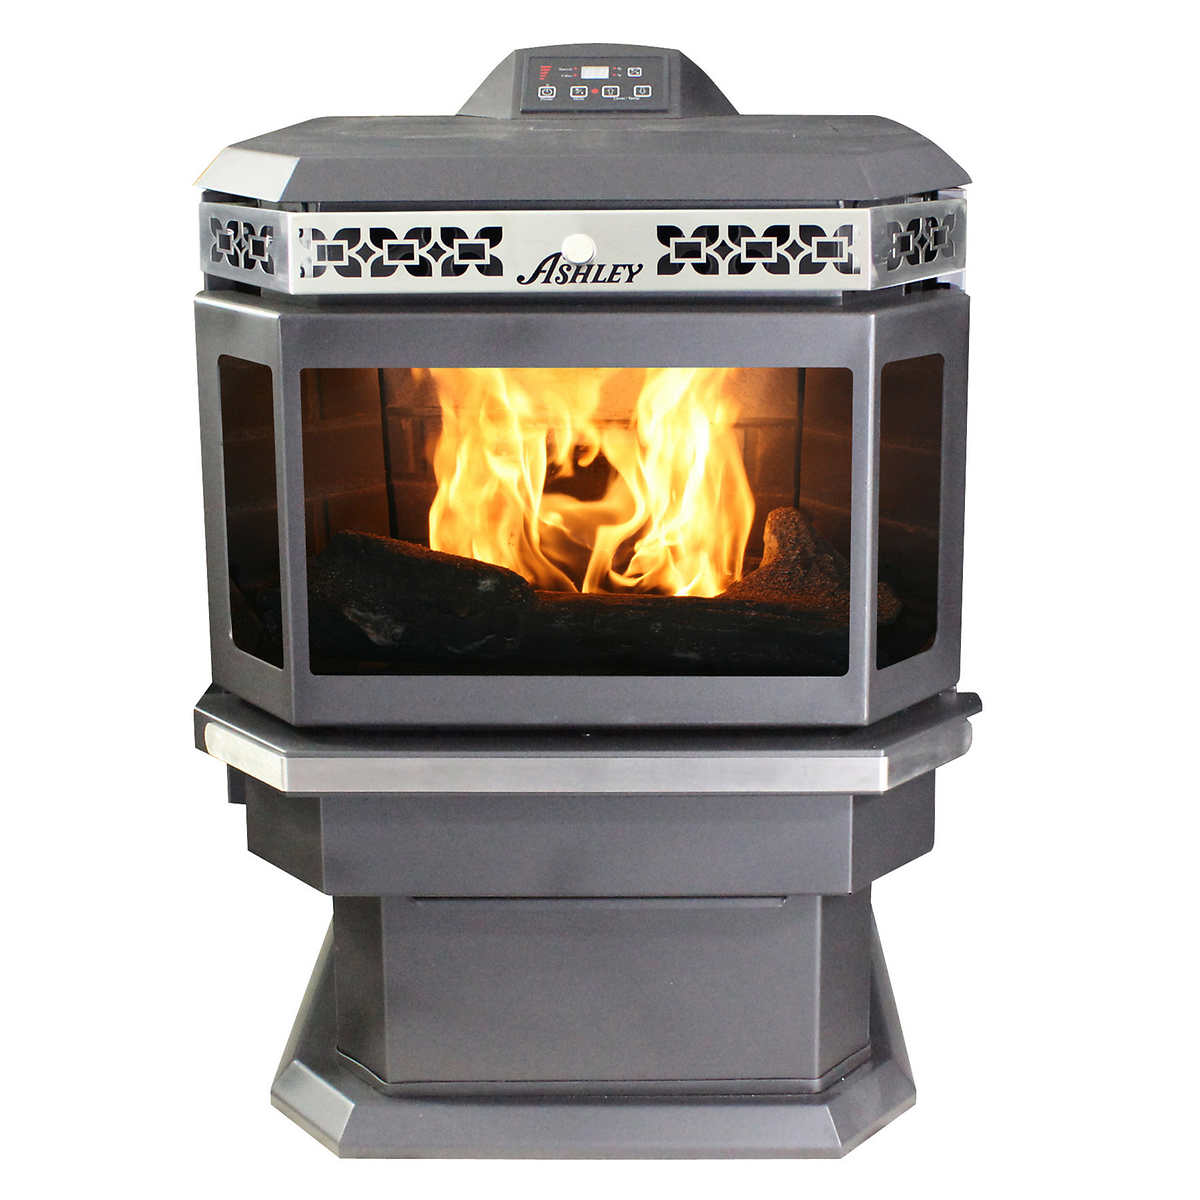 Fireplaces stoves accessories costco us stove ap5660 ashley bay front pellet stove eventelaan Choice Image